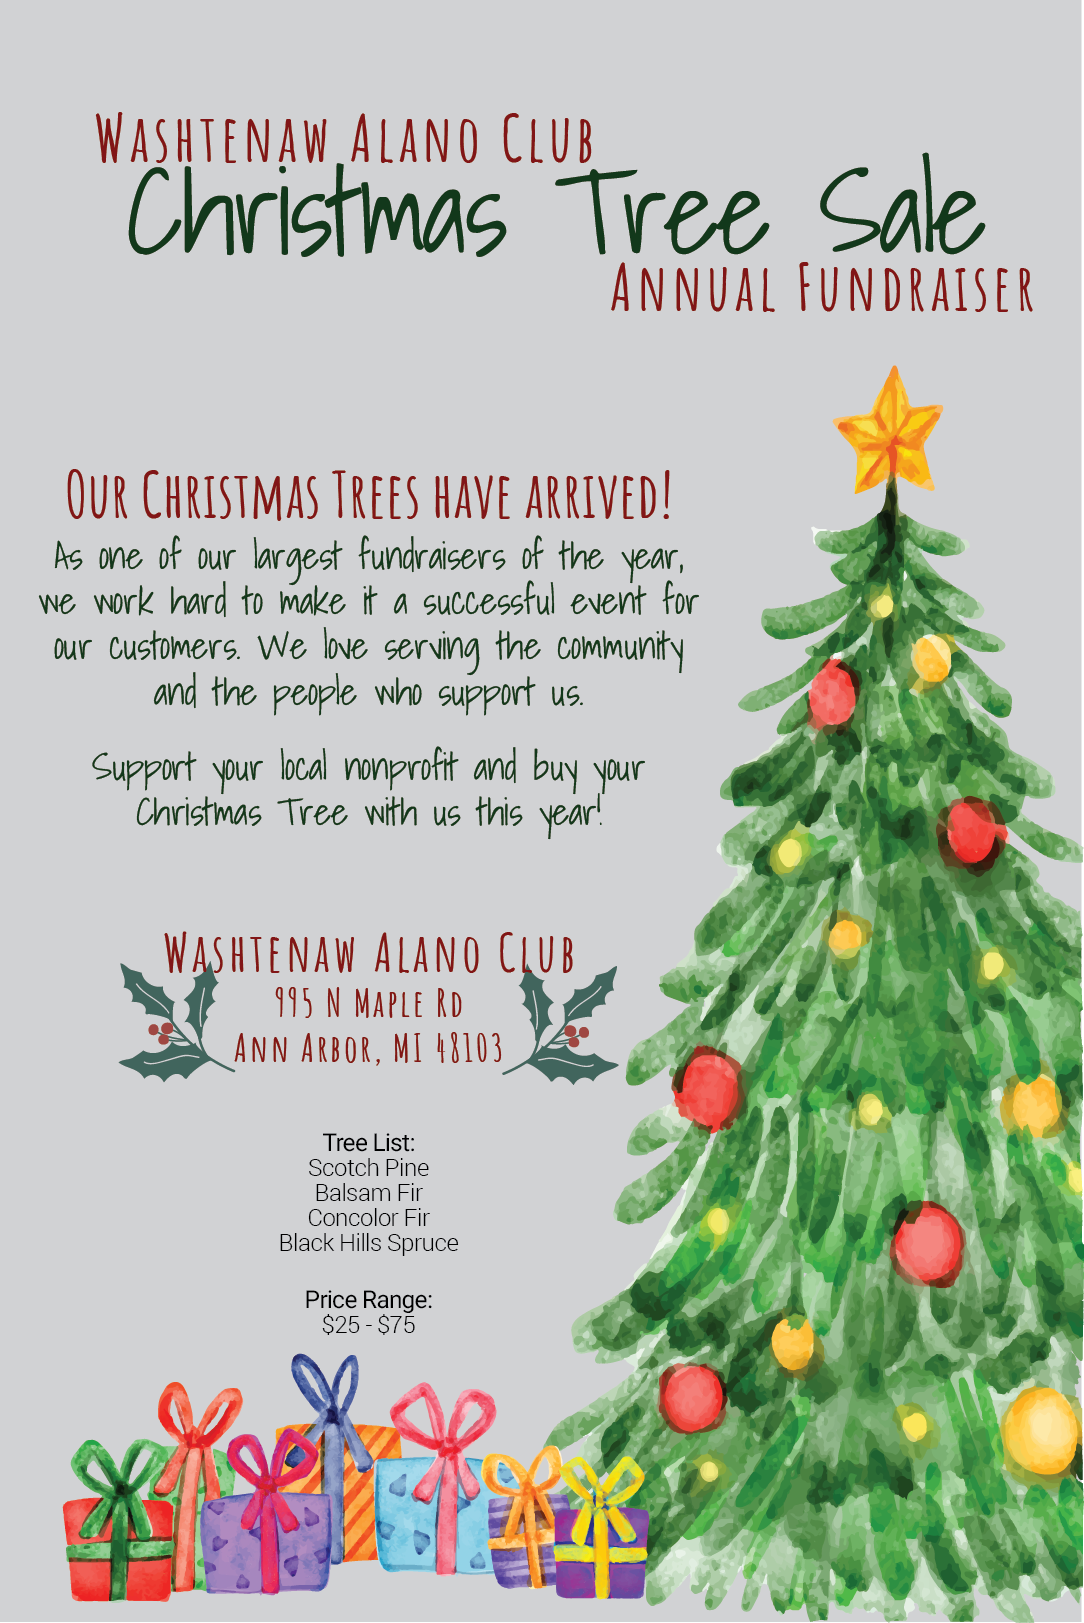 Washtenaw Alano Club – Supporting the Recovery Community